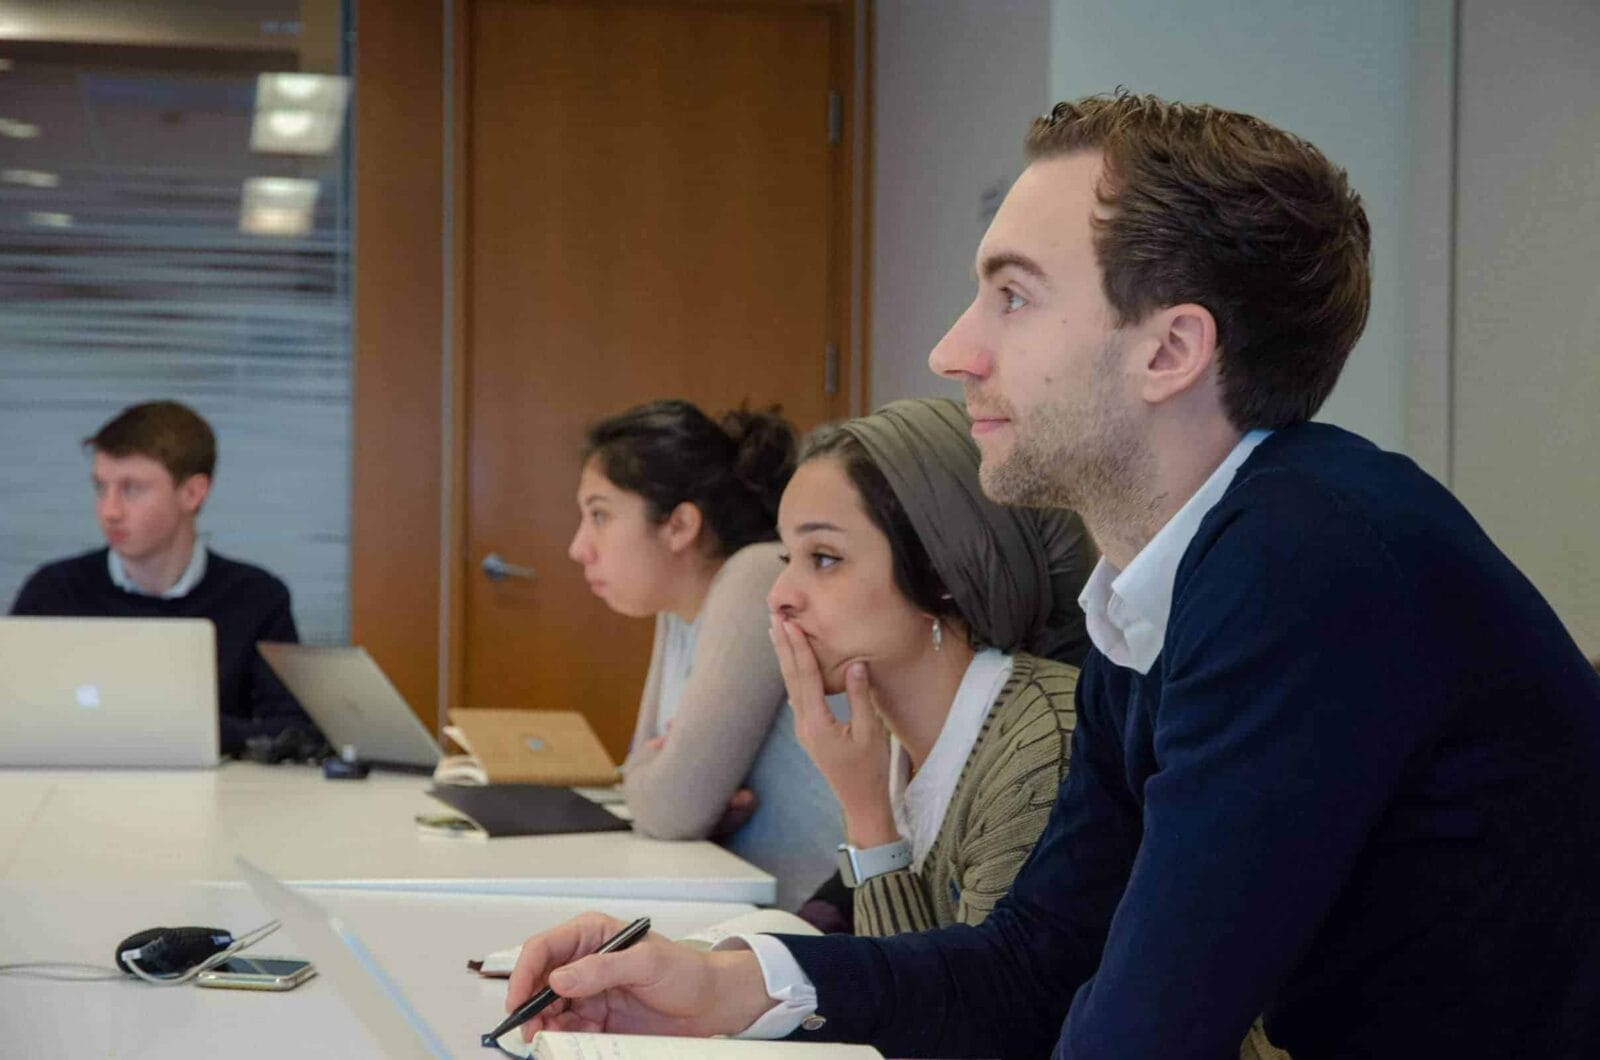 Global Pulse Launches Data Fellows Programme to Connect Doctoral Researchers with UN Entities 2